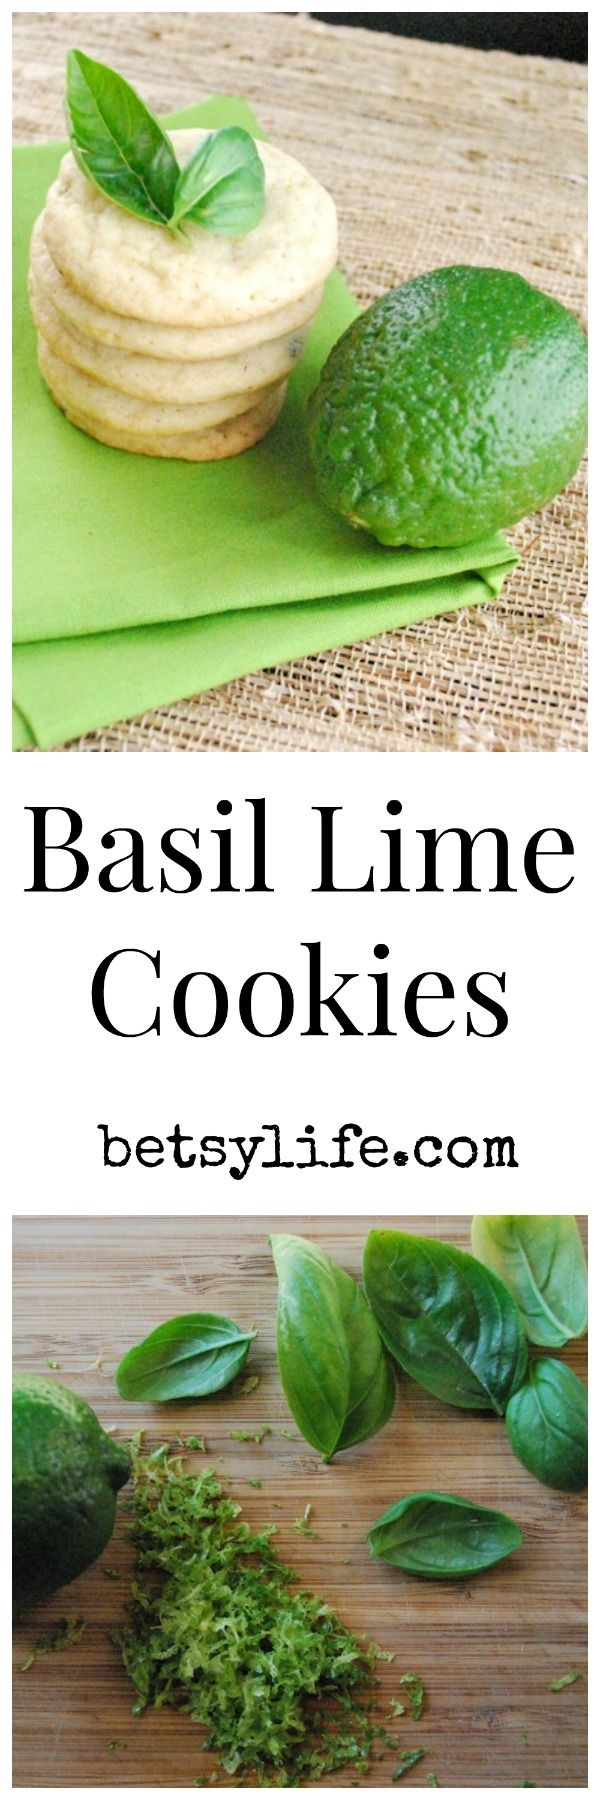 Basil Lime Cookies: increase vanilla to 1 tsp & add fresh lime juice 1/2-1 tablespoon